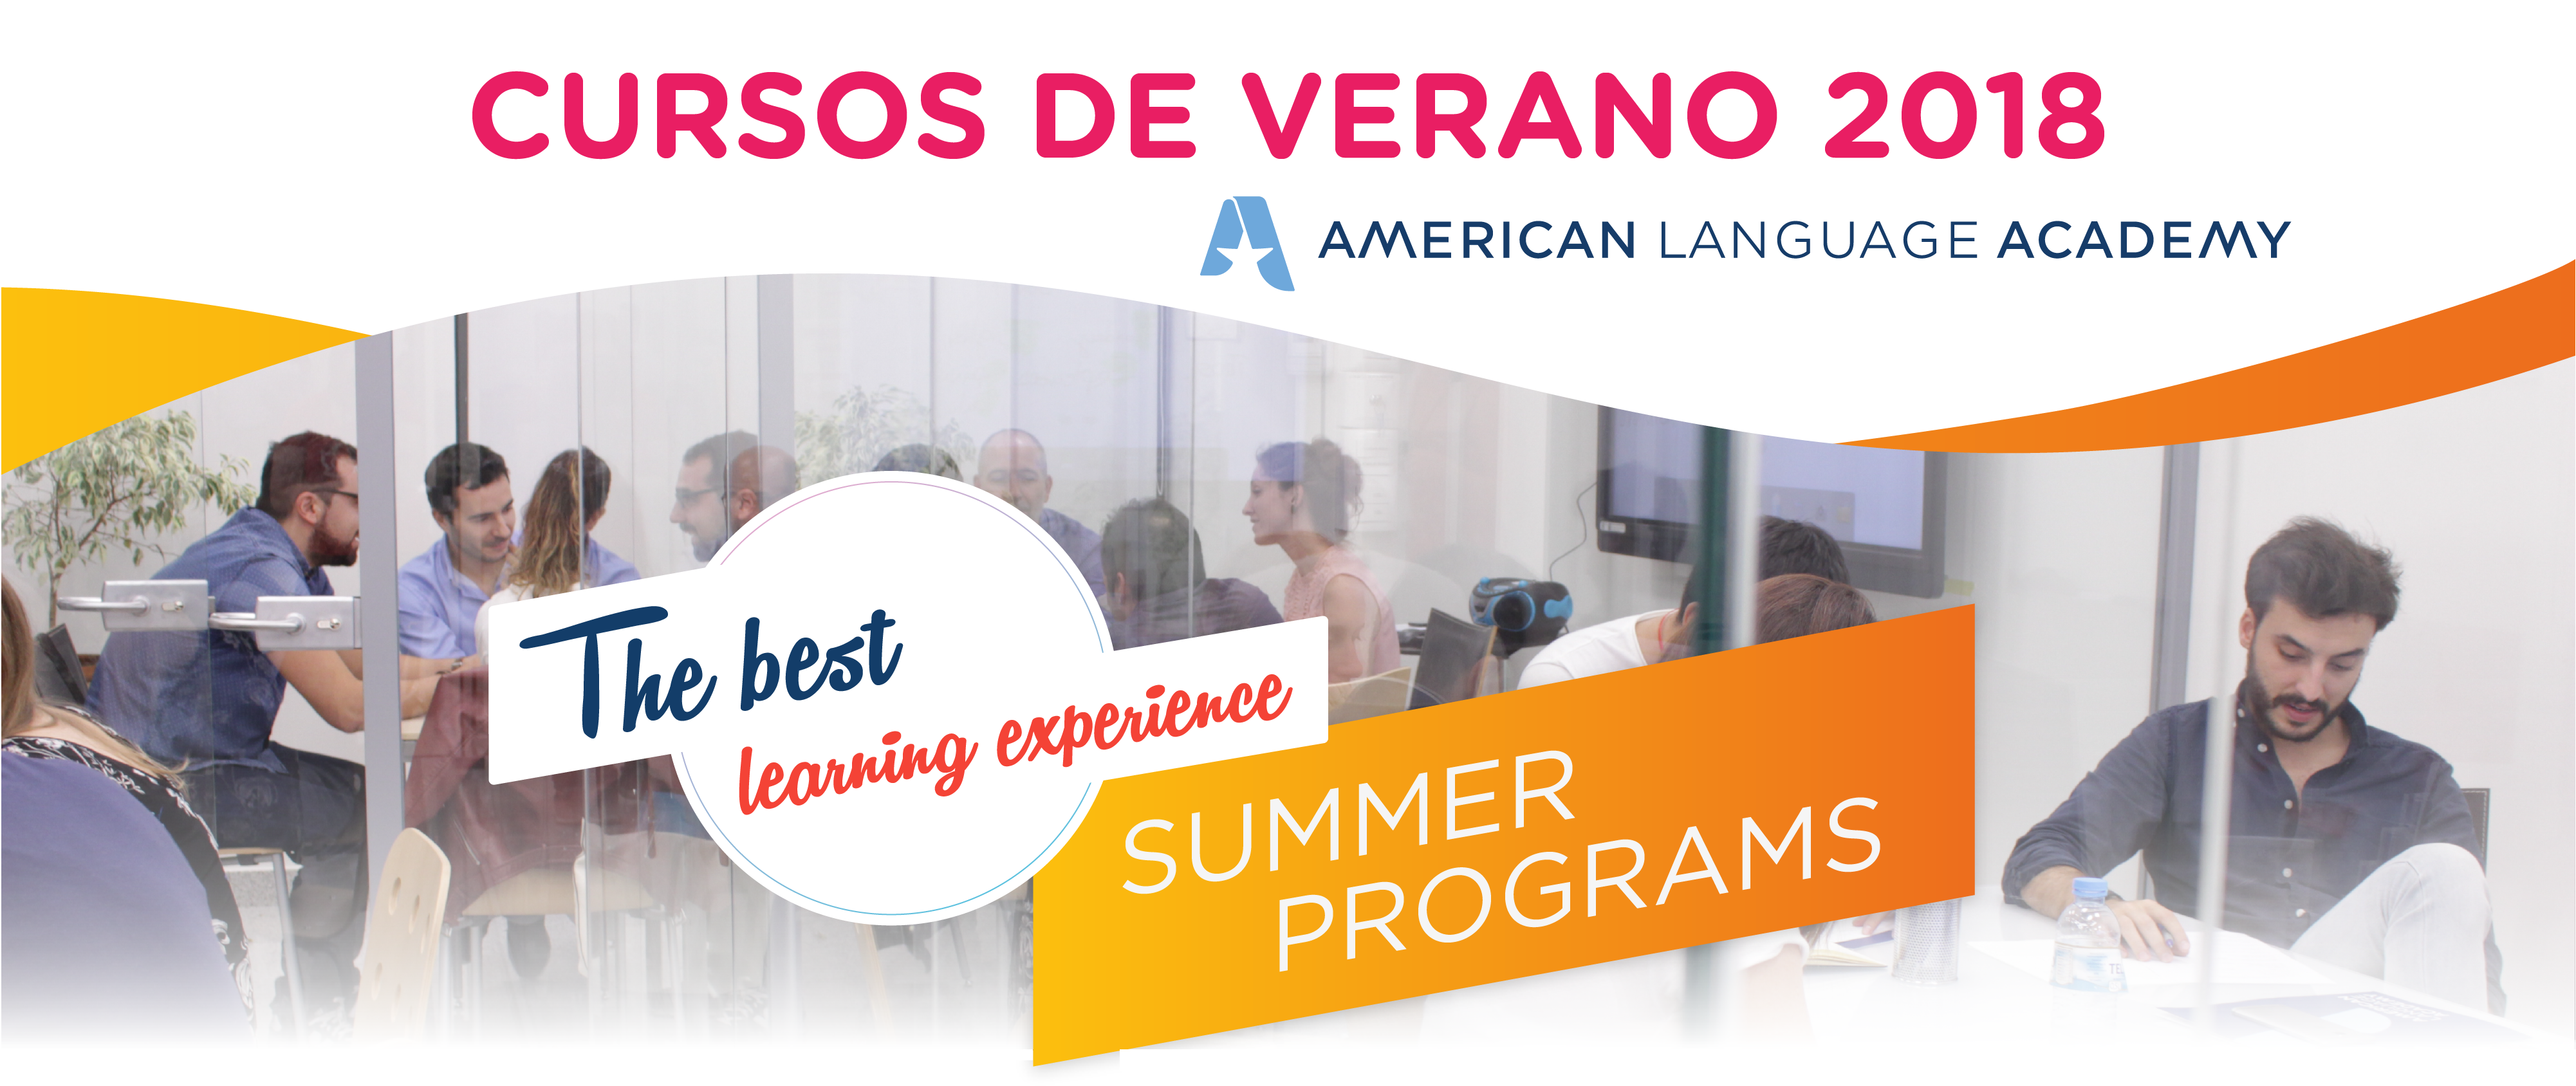 cursos ingles madrid